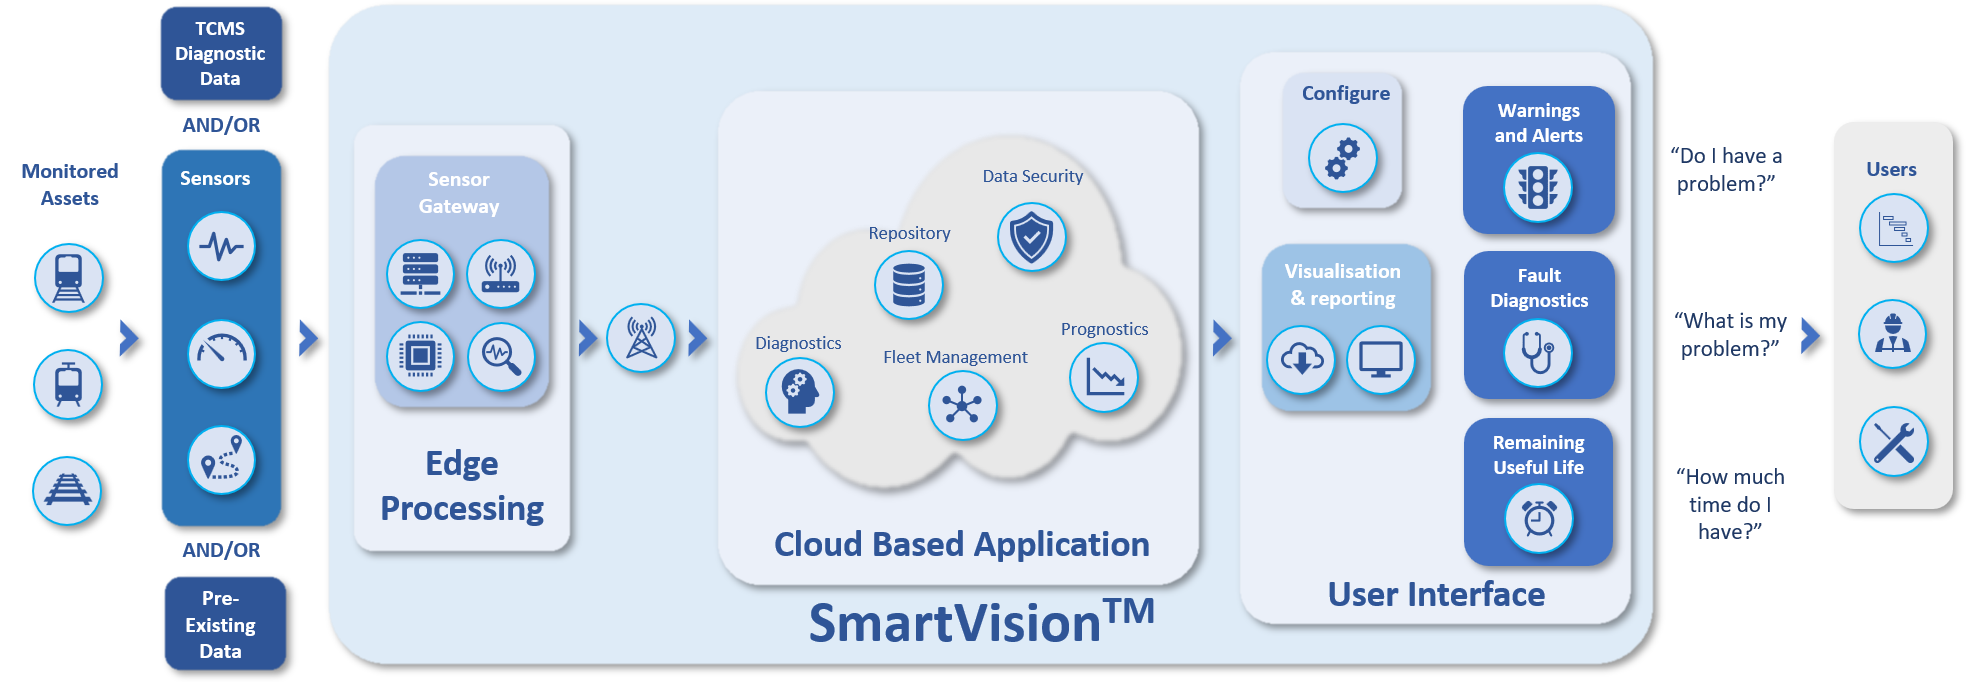 A diagram showing the components of SmartVision